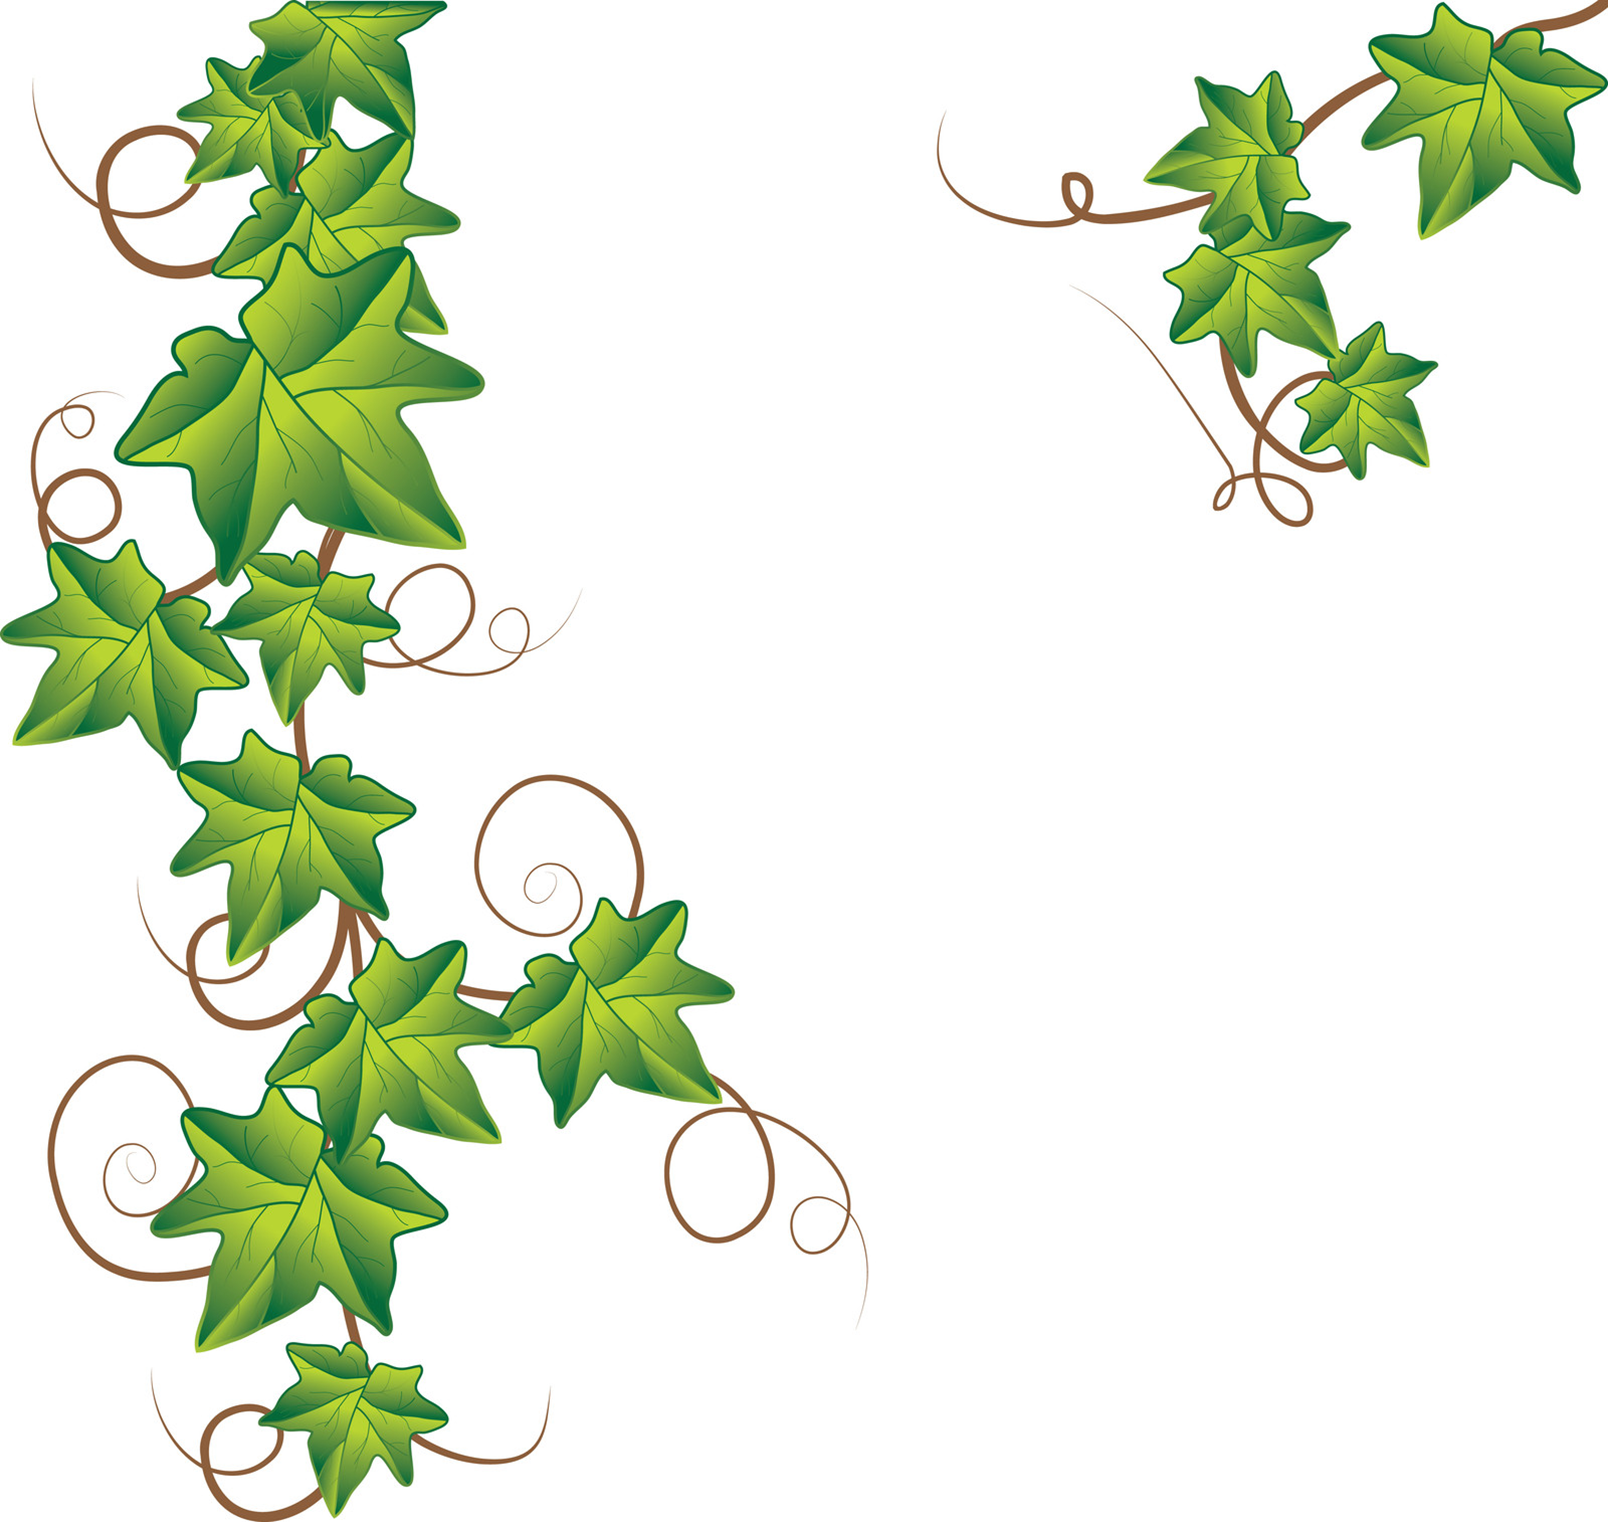 10 Ivy Leaf Vector Images